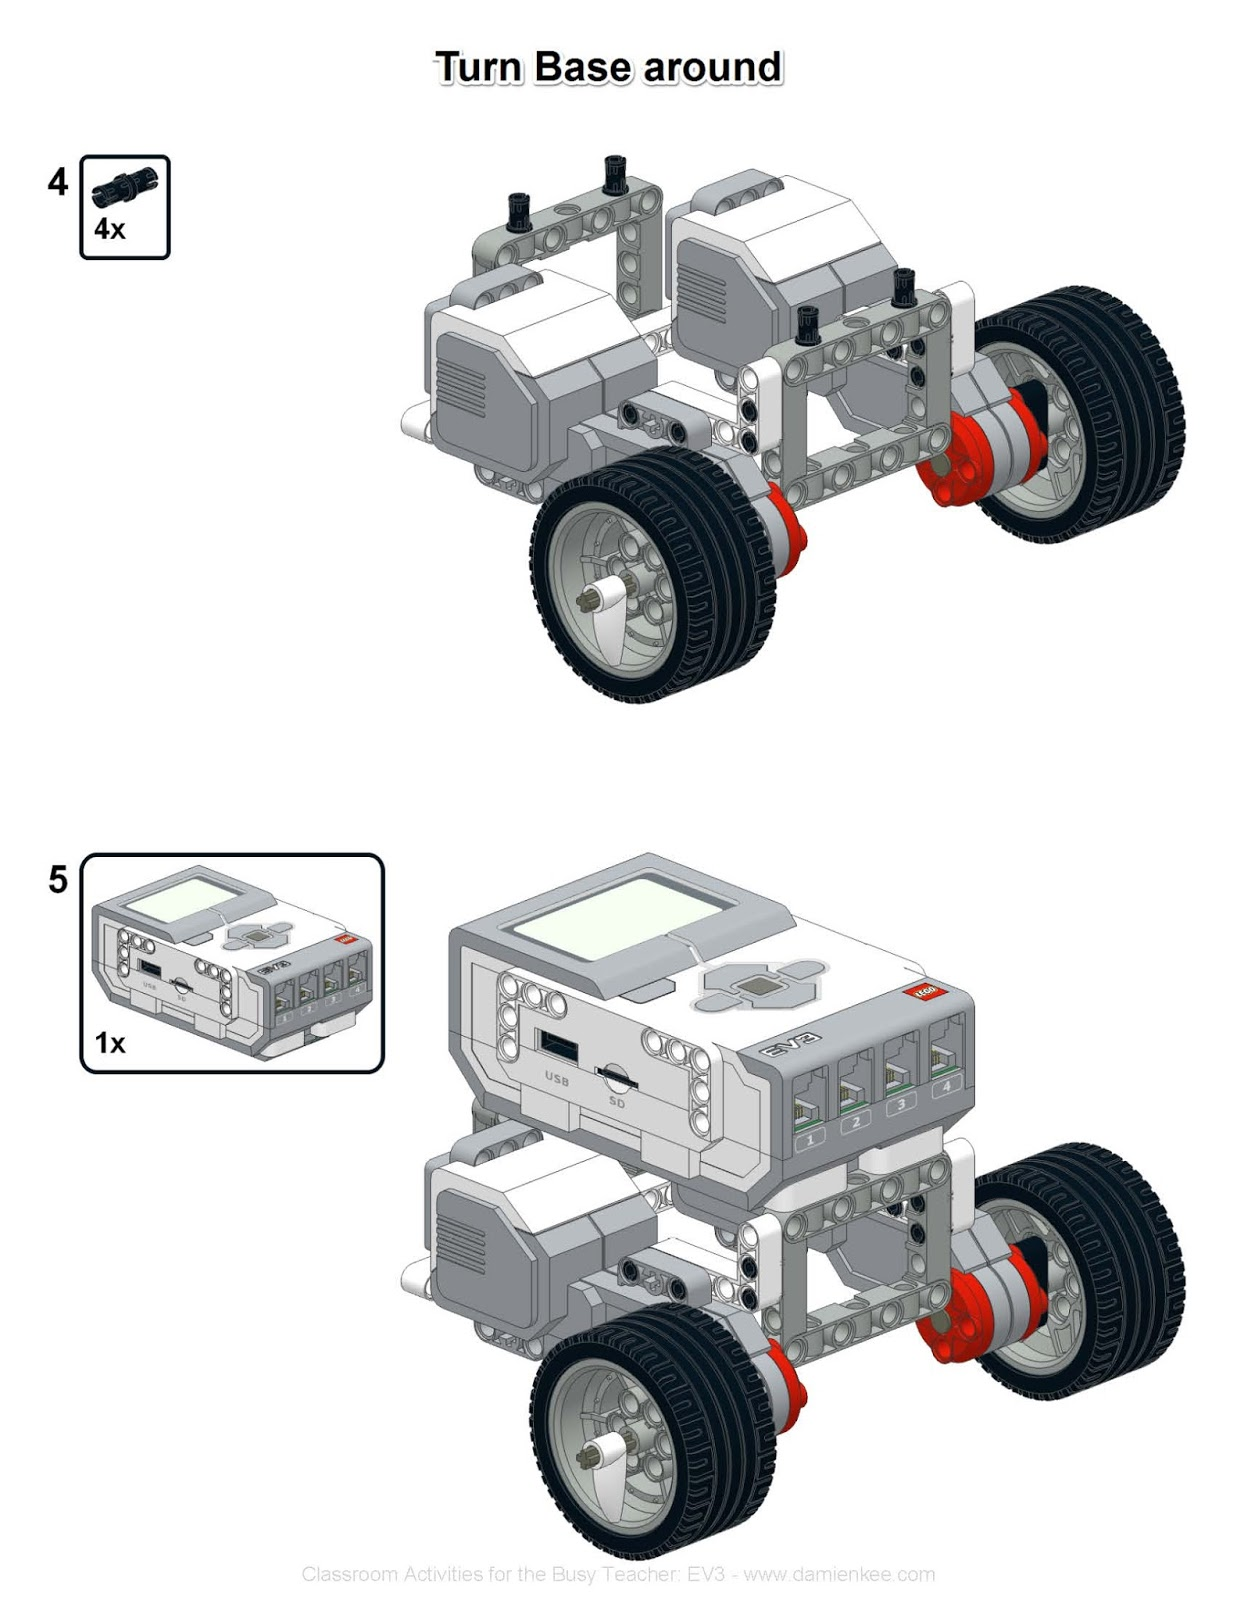 mindstorms projects This is a fun project using a lego mindstorms ev3 set along with a few household products: the lego mindstorms music box (updated 2/21/17 – added full build instructions along with a video showing how the mindstorms music box is all put together).